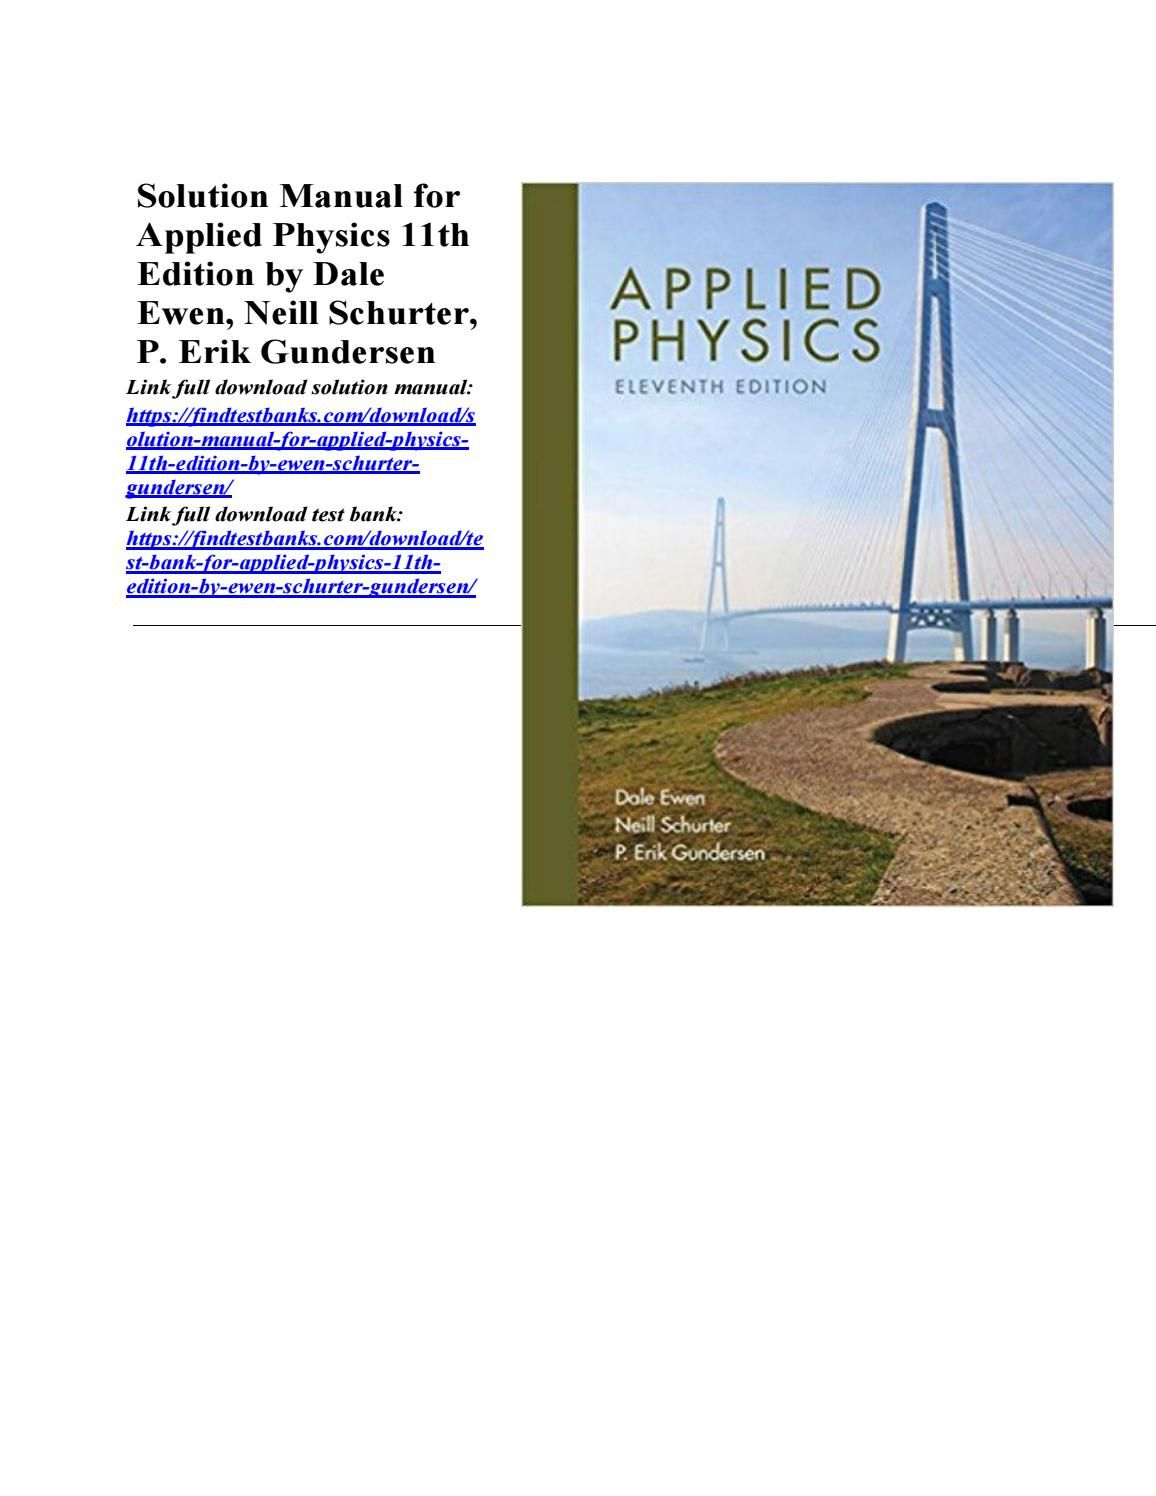 Solution Manual For Applied Physics 11th Edition By Ewen Schurter Gundersen Physics Solutions How To Apply